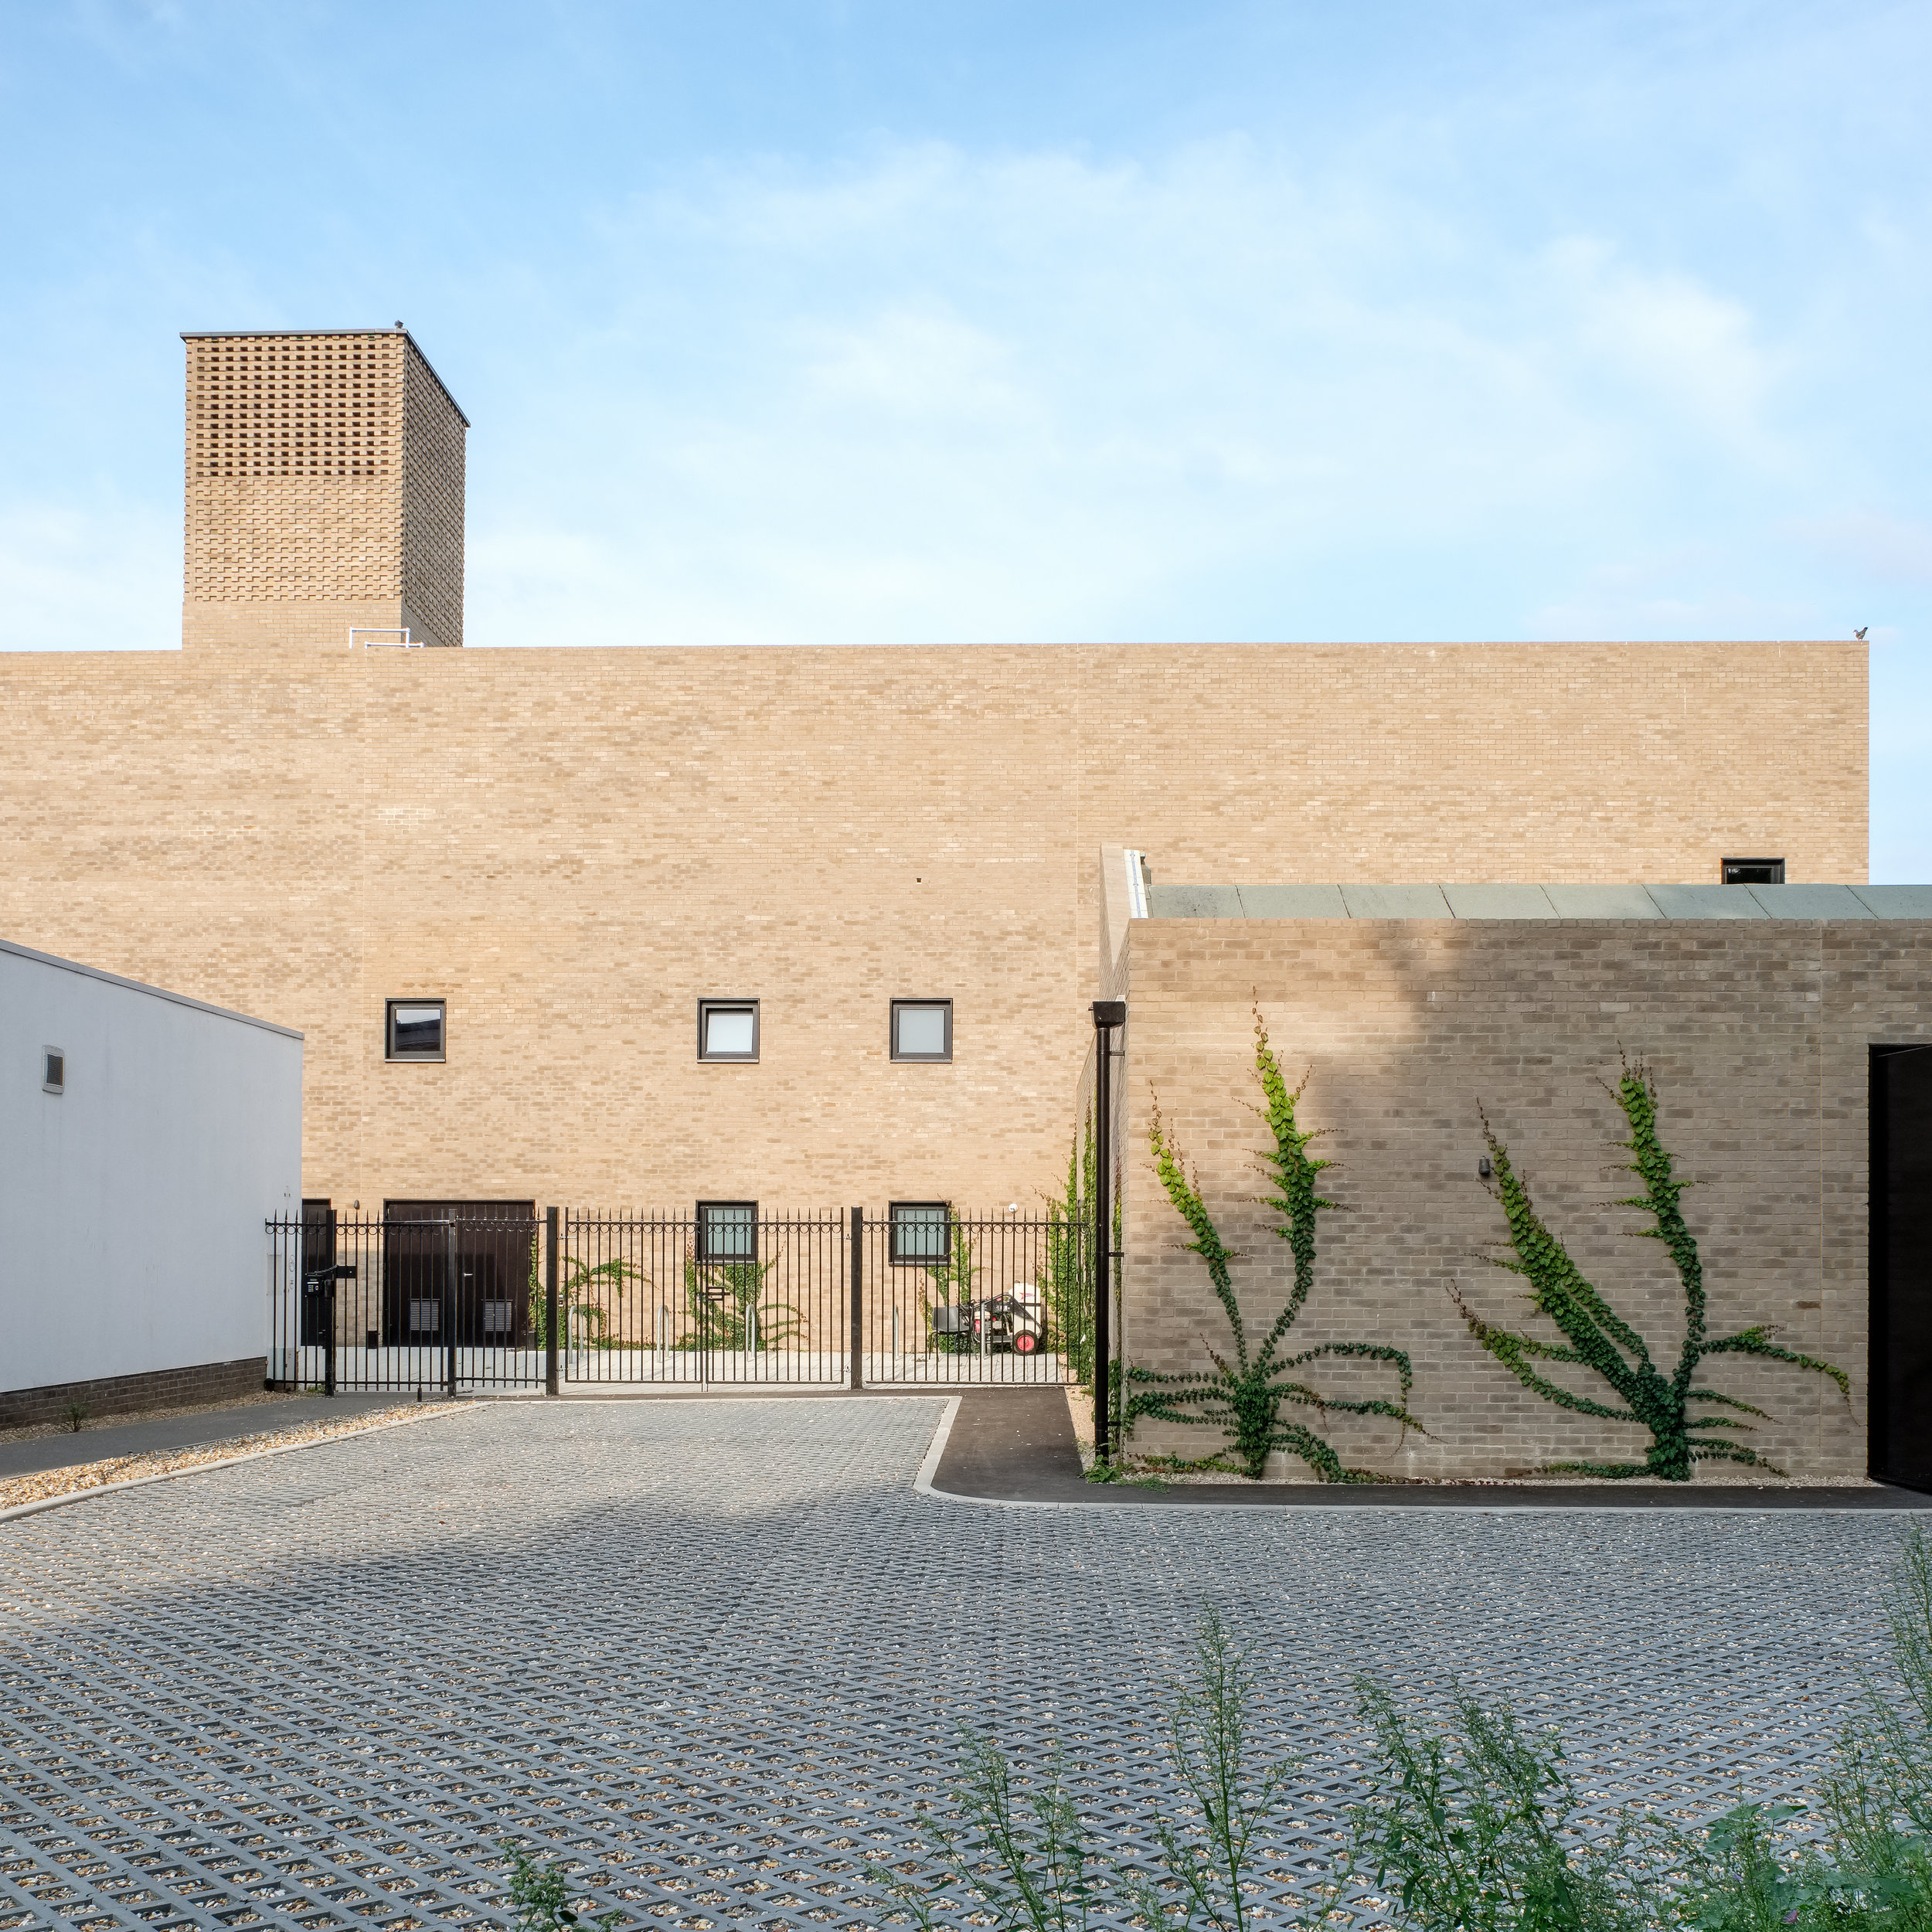 Fred+Howarth+Photography_Perse+Schol+Performing+Arts+Centre_28.jpg